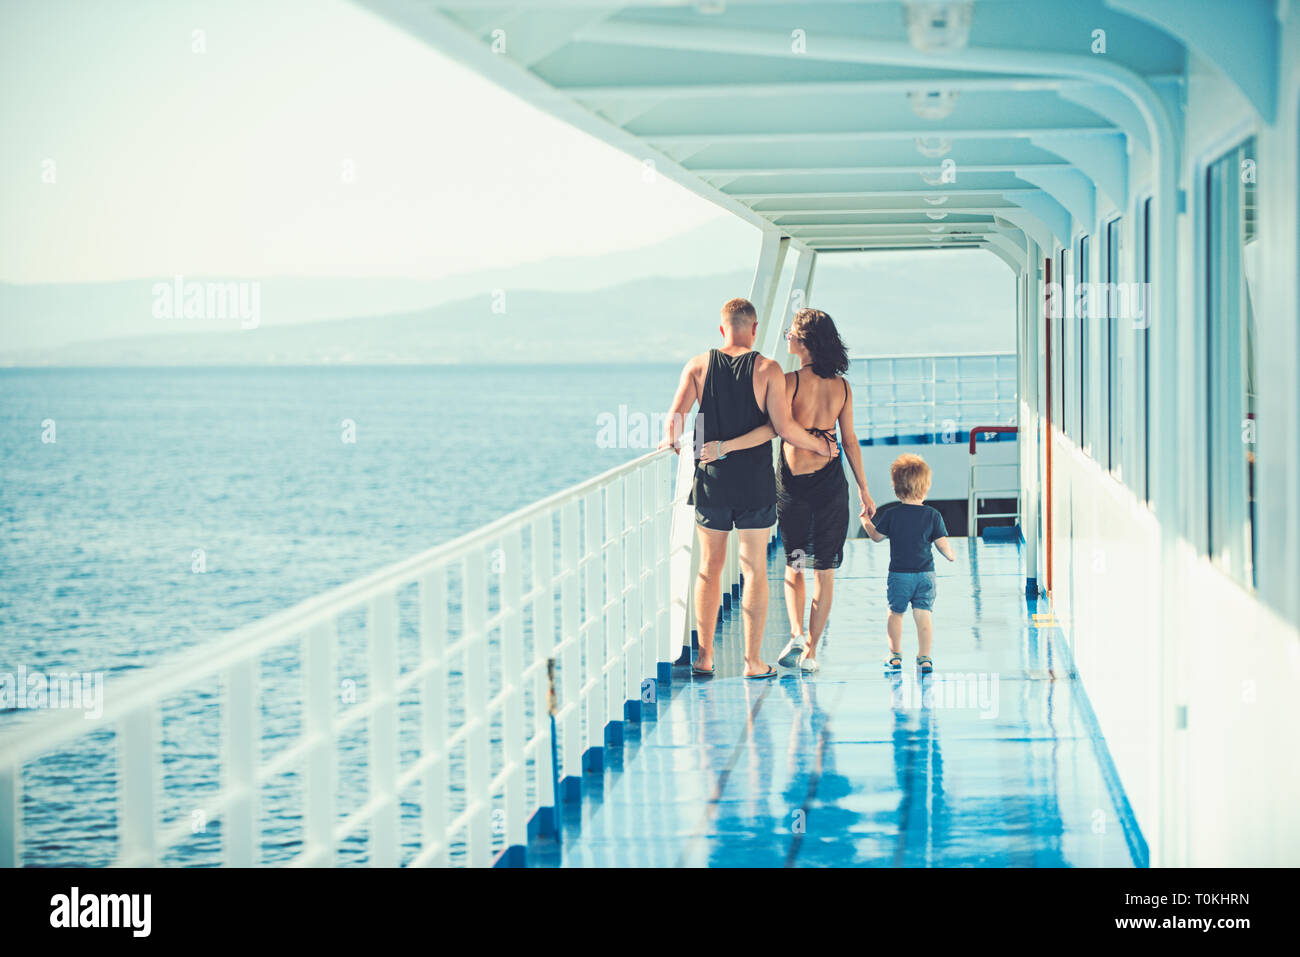 family with son walking on cruise liner deck, full body. - Stock Image